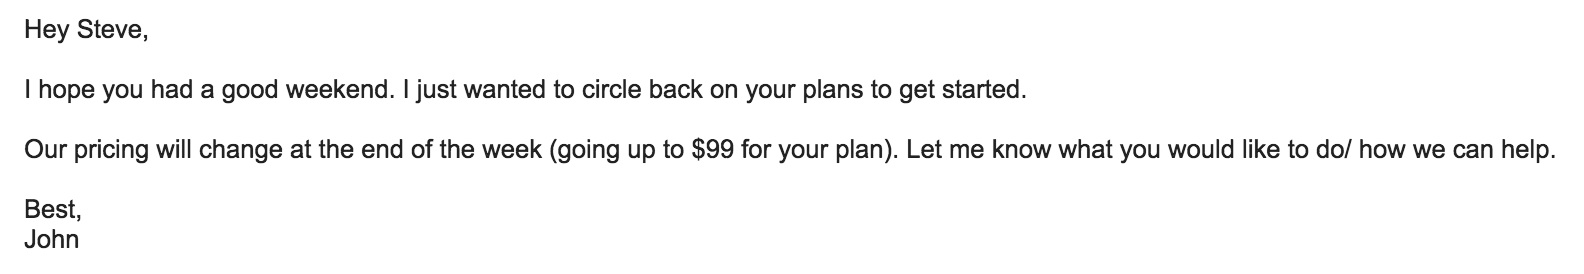 Pricing increase follow-up email sample for sales